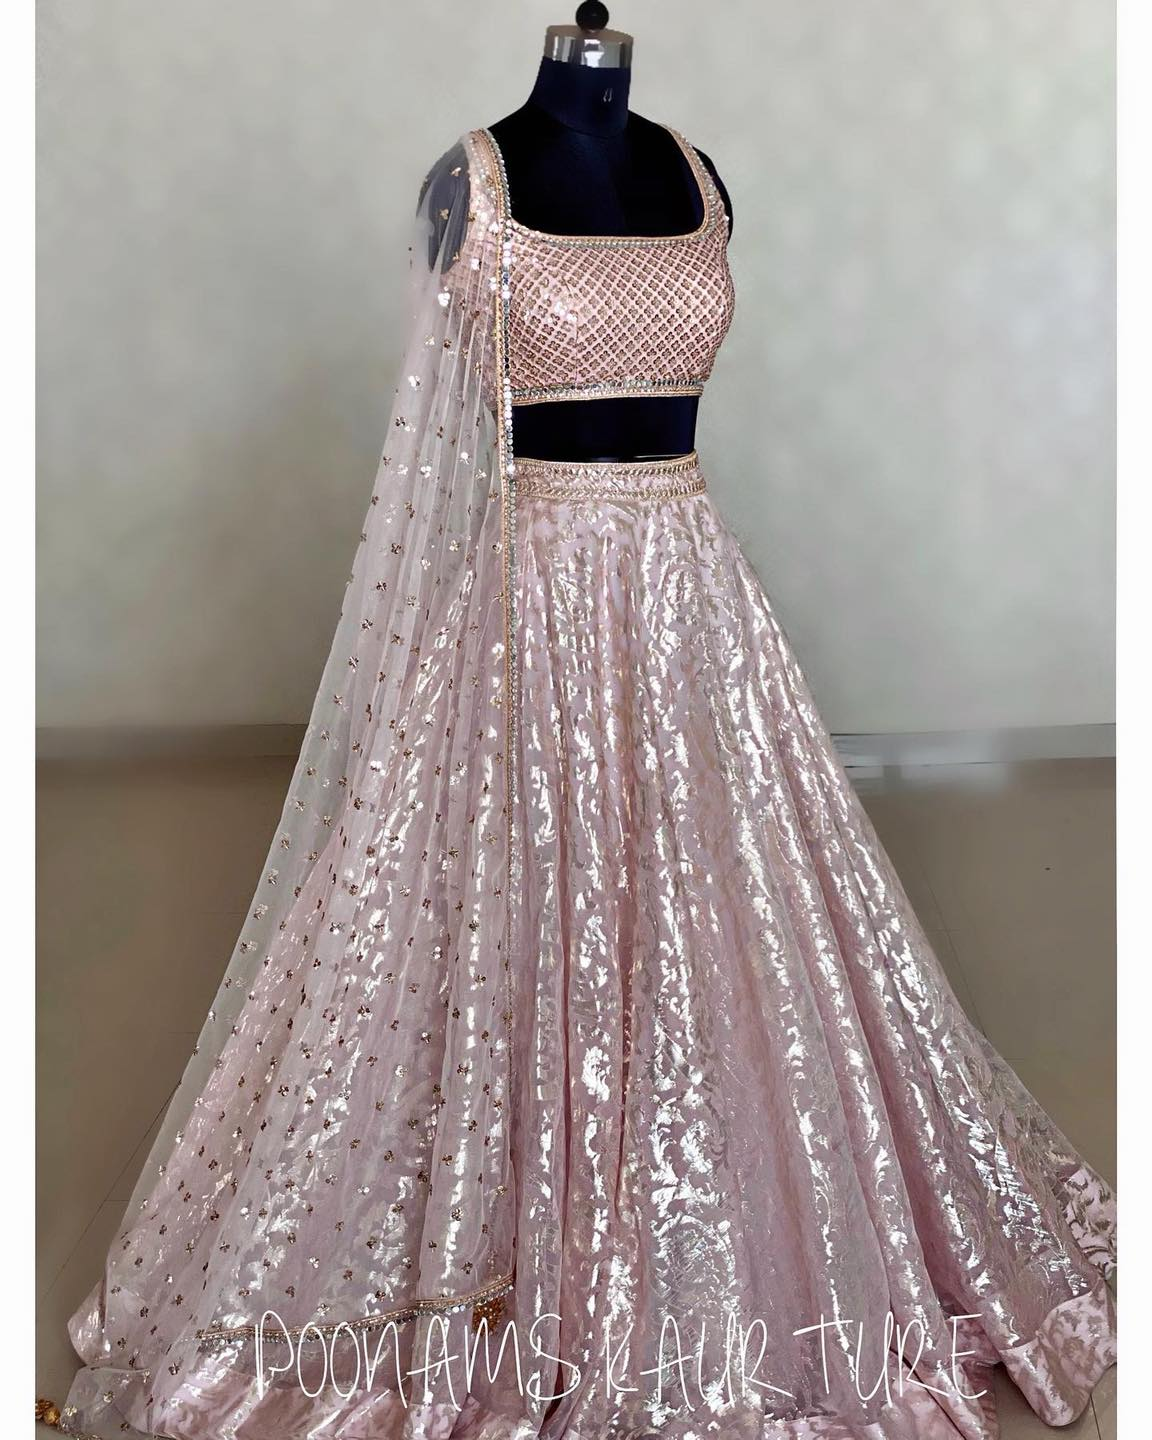 MAGNOLIA  Outfit details - Blouse . heavy sequins on georgette  Lehnga . soft champagne foiled organza  Duppatta . soft net sequins  This piece can be customized in any pastel shade.   2021-01-27